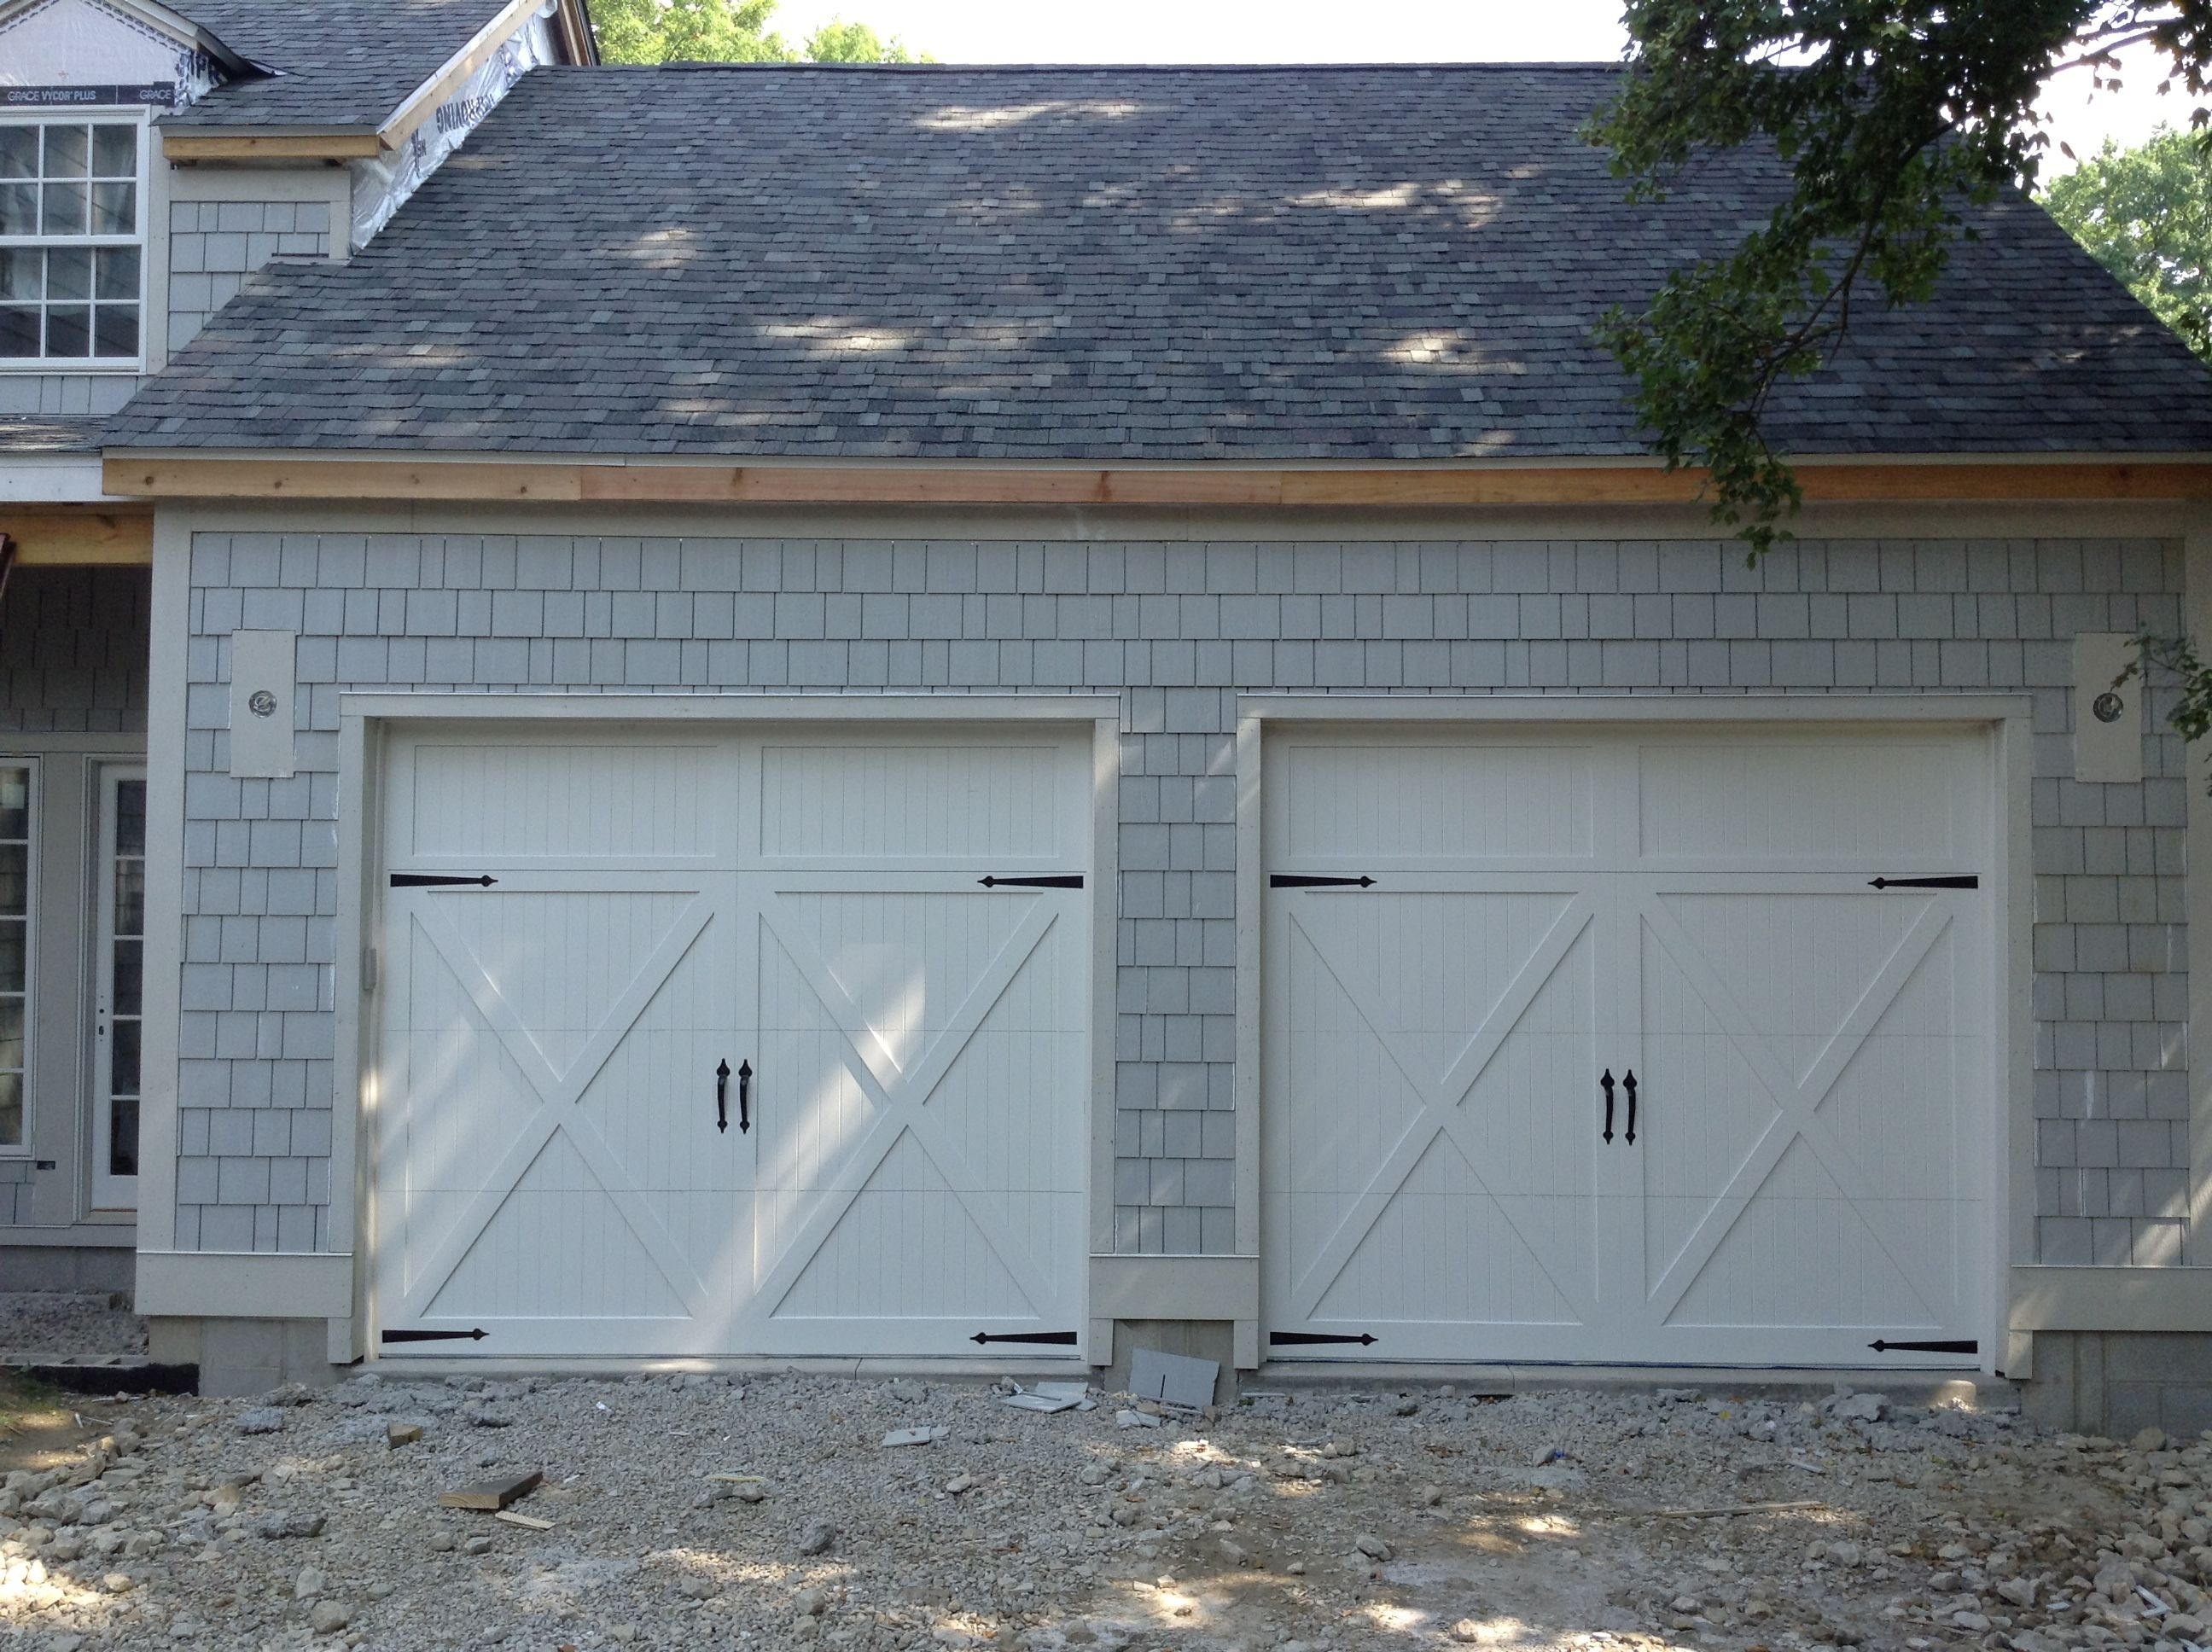 C H I 5434 White Carriage House Door With No Windows White